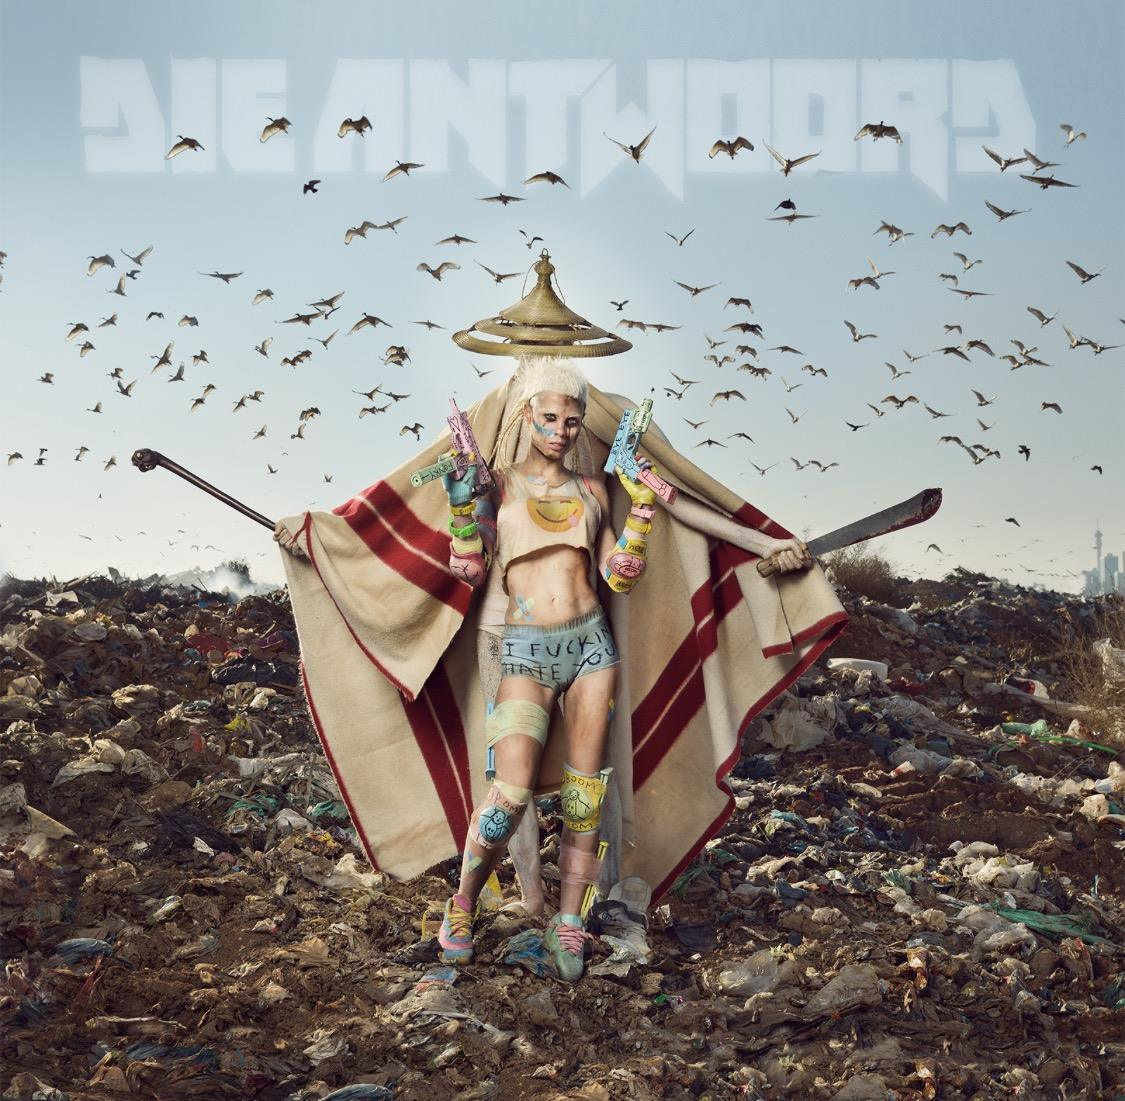 Die Antwoord Drops News About New Album Release and New Single